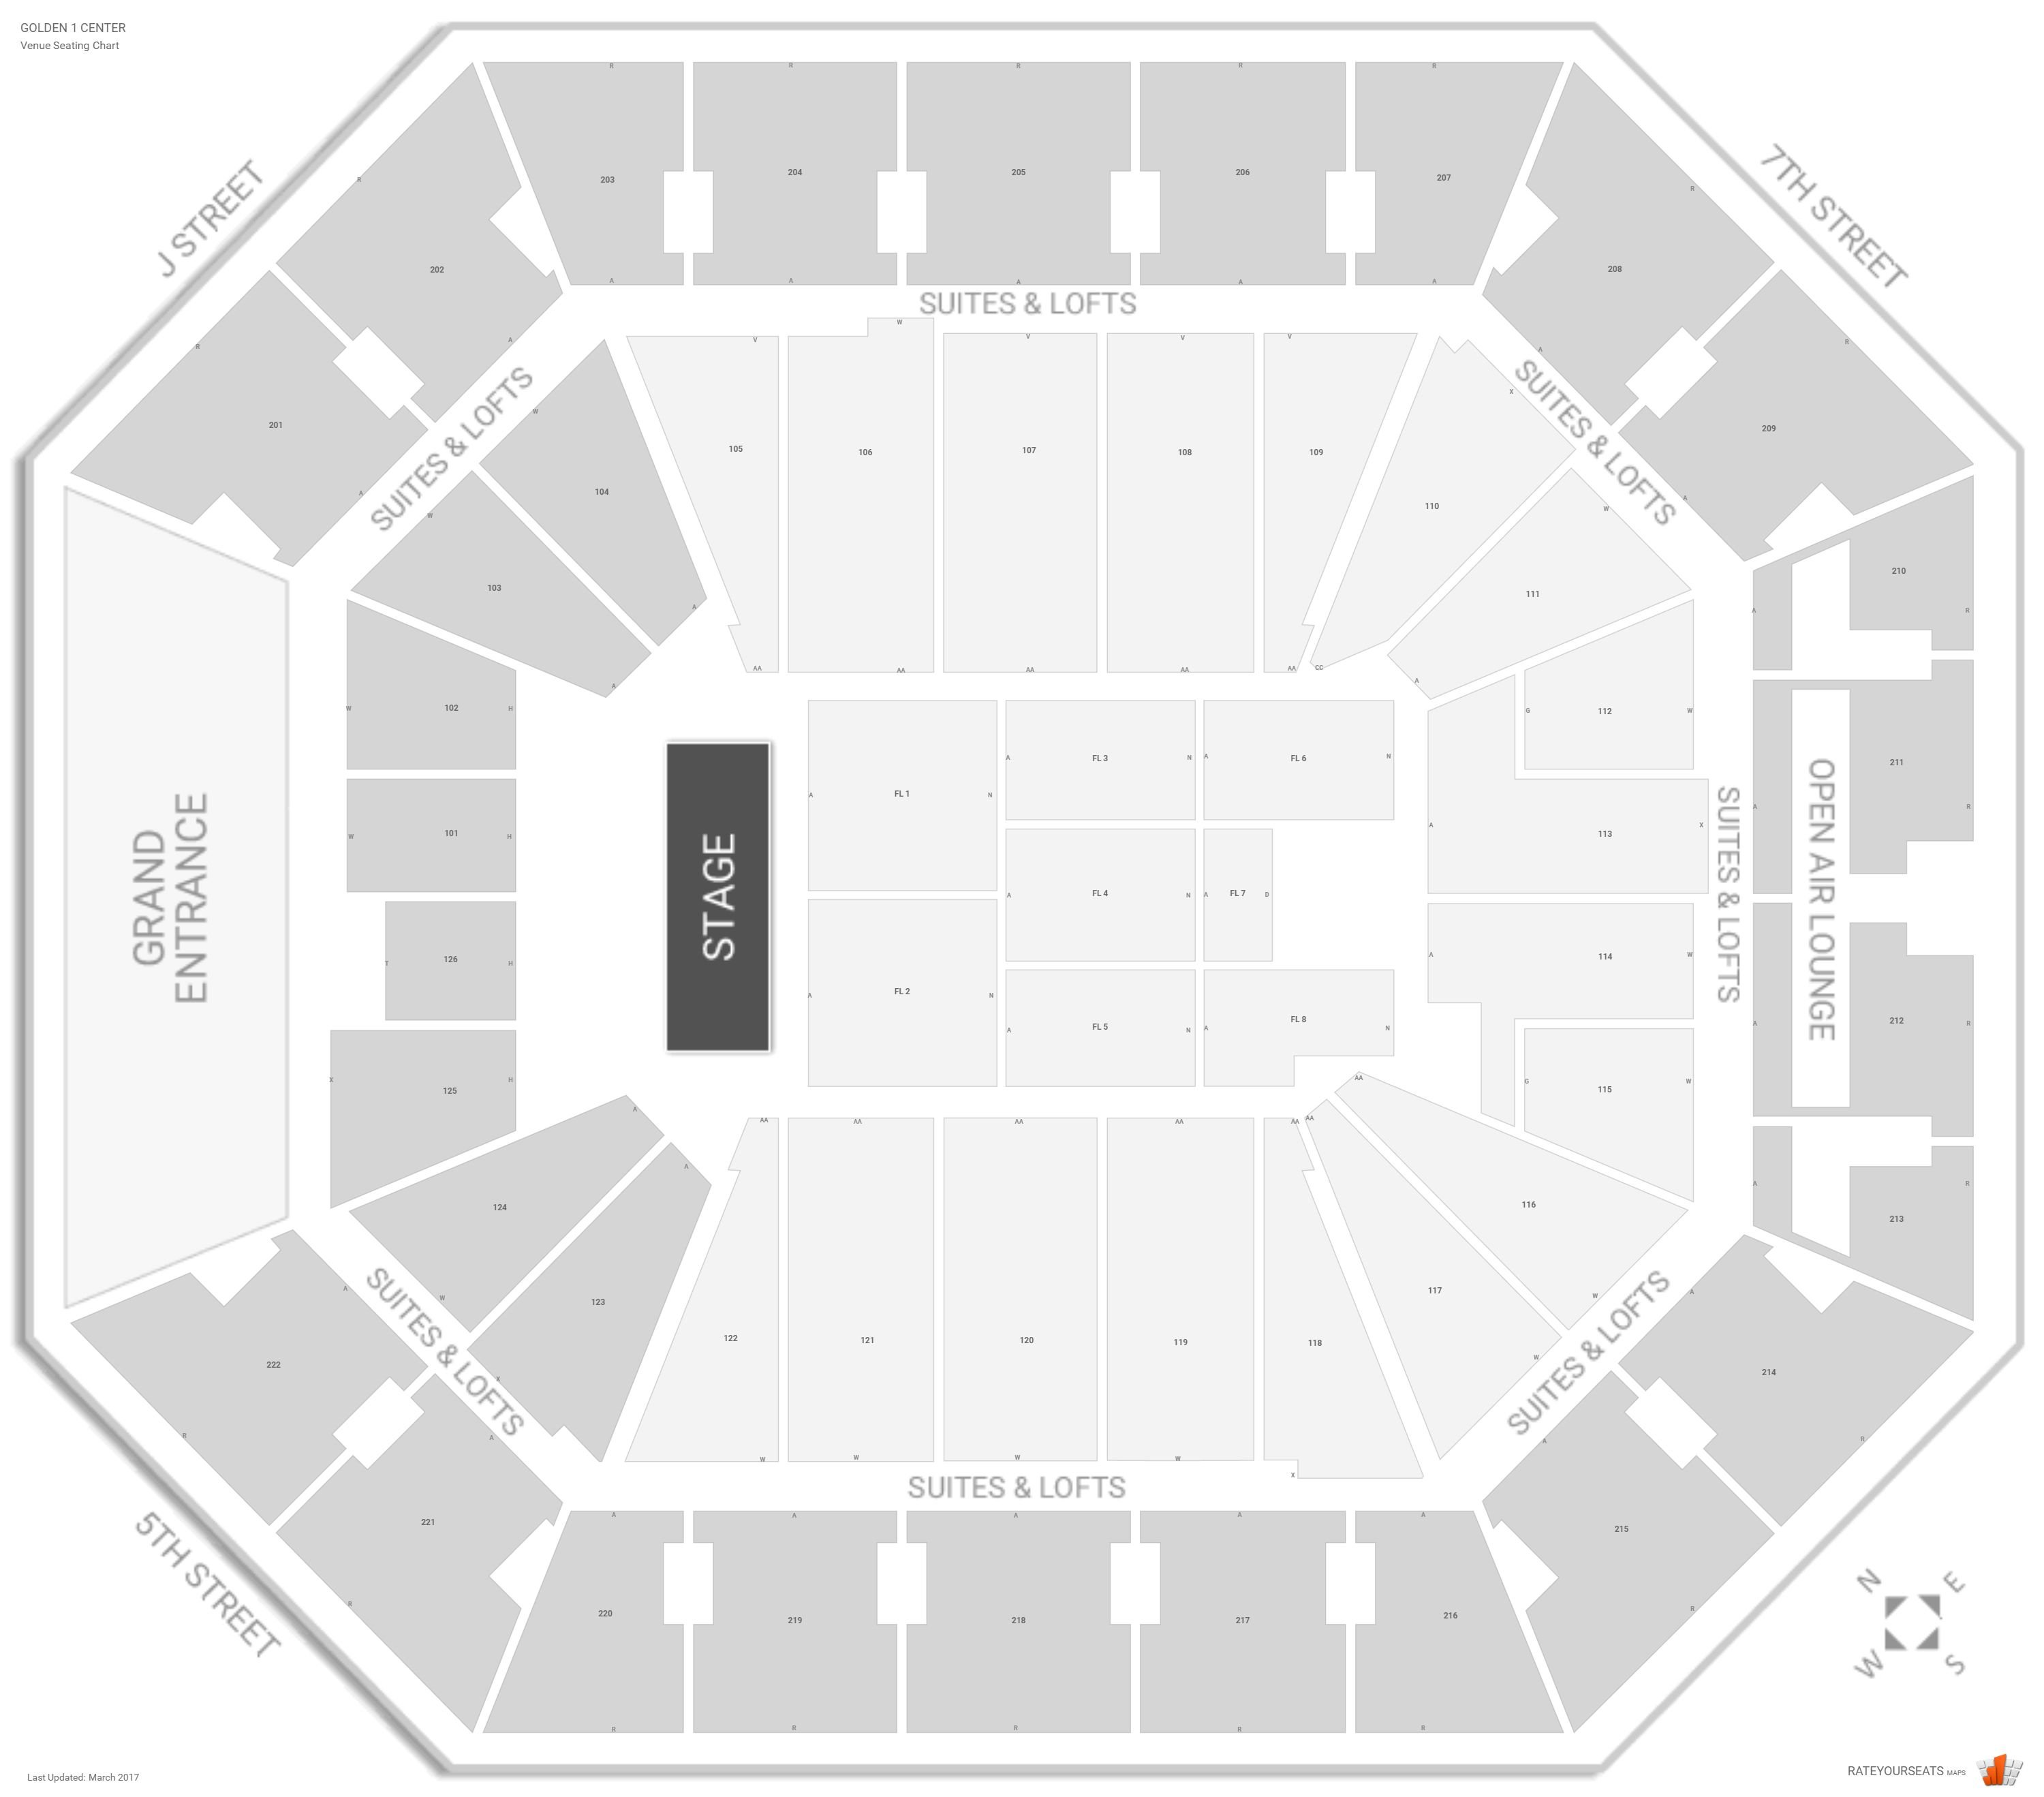 Golden 1 Center Seating Chart With Row Numbers